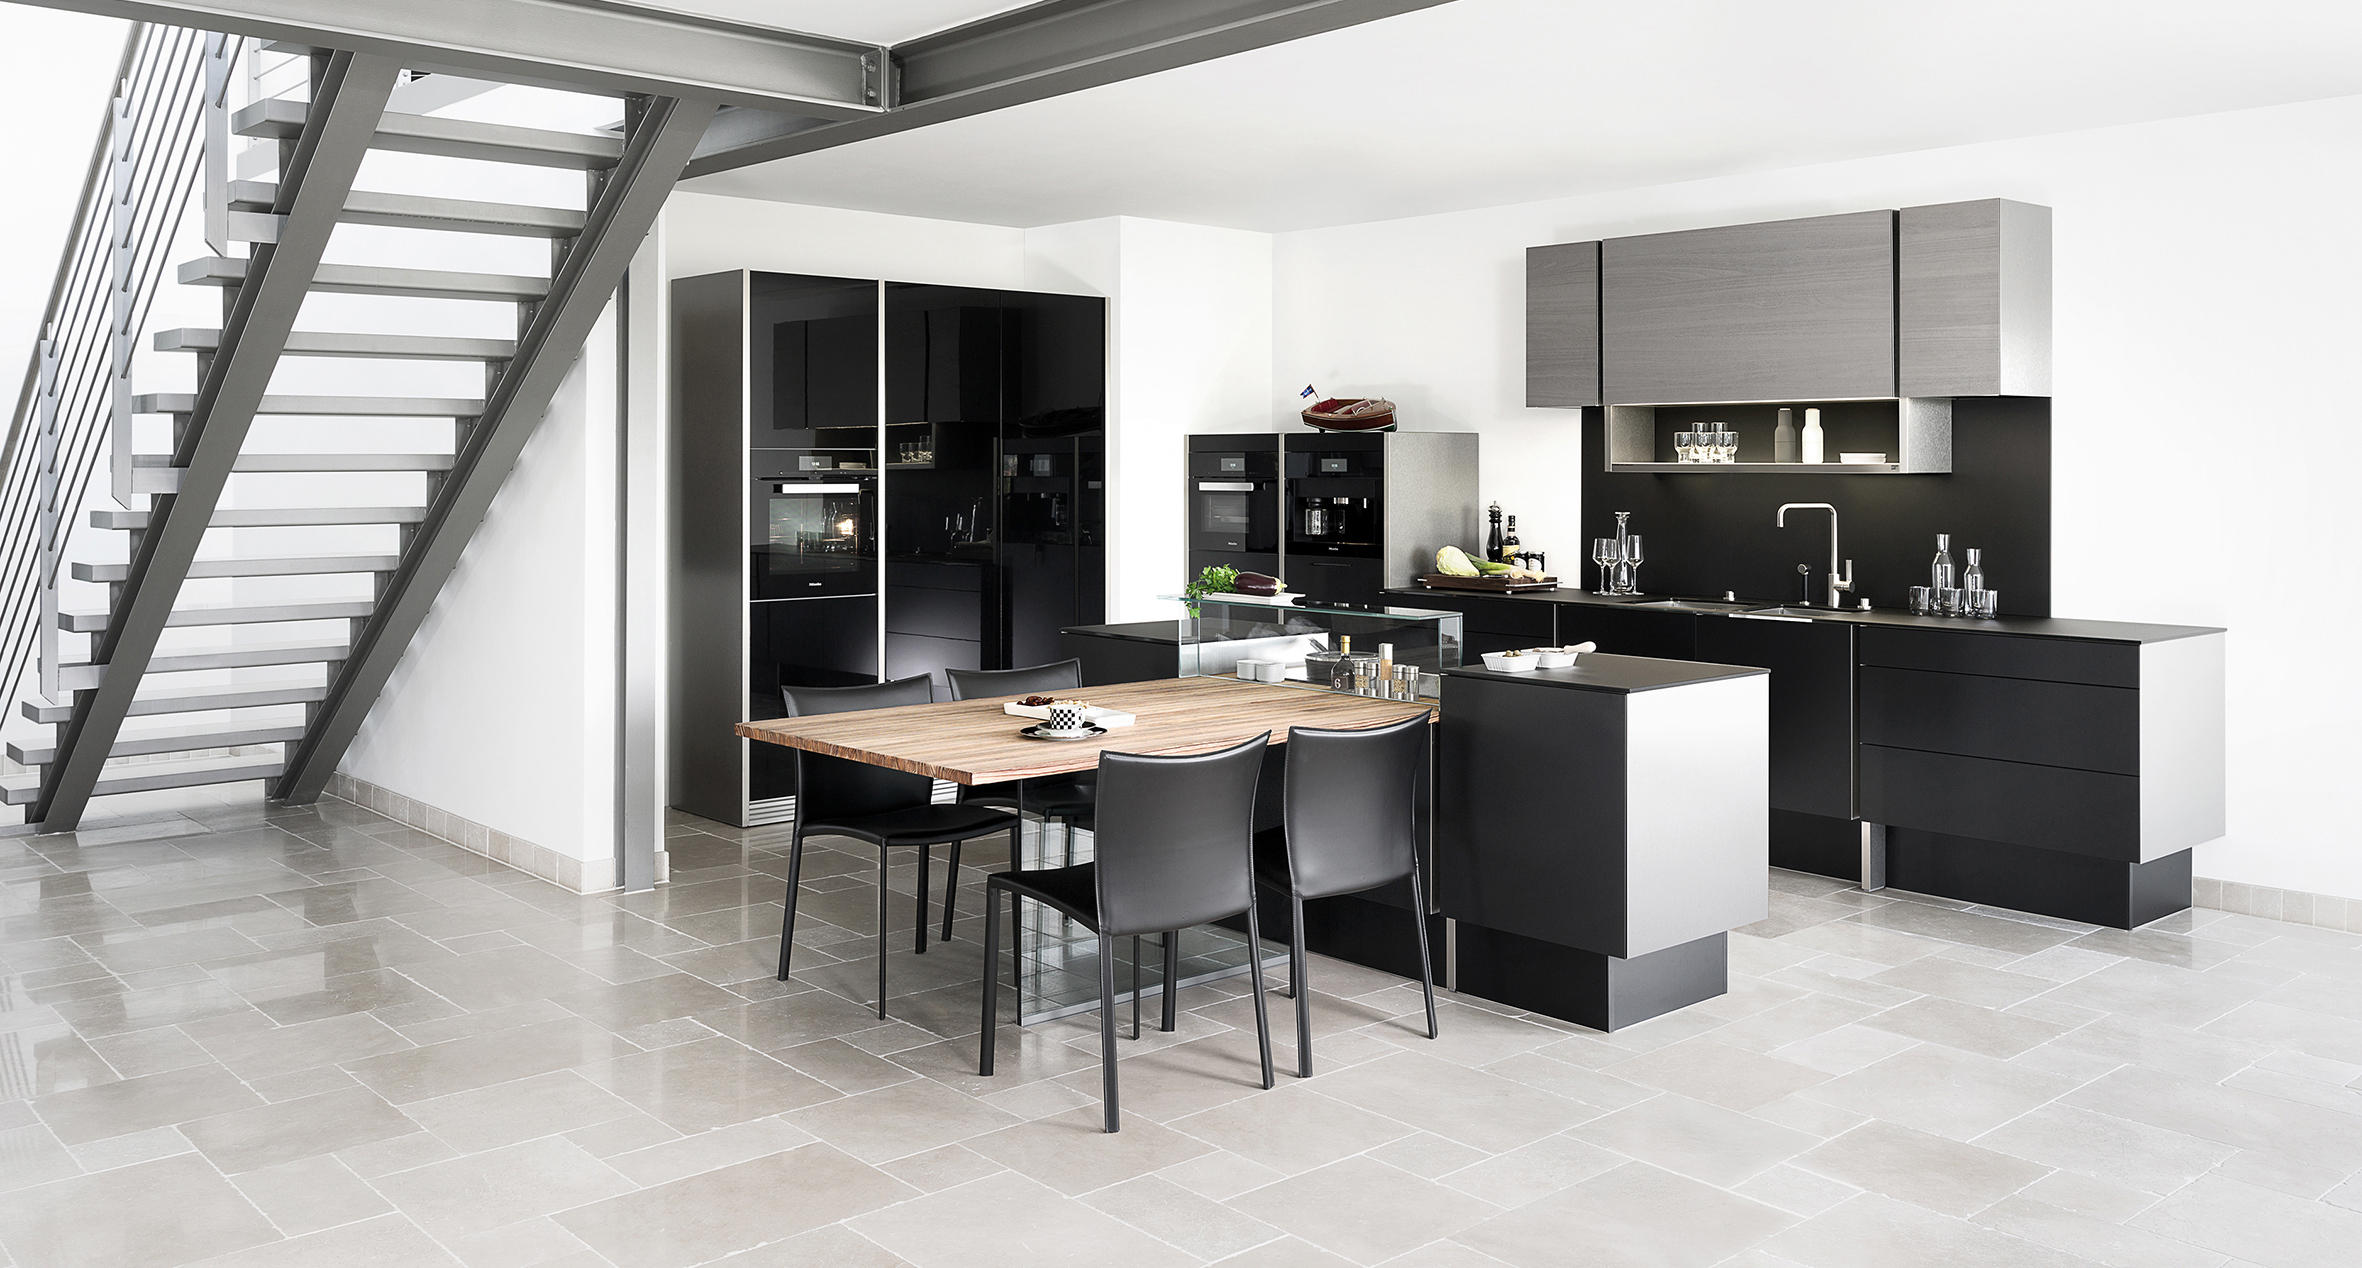 P 180 7350 Design By Studio F A Porsche Fitted Kitchens